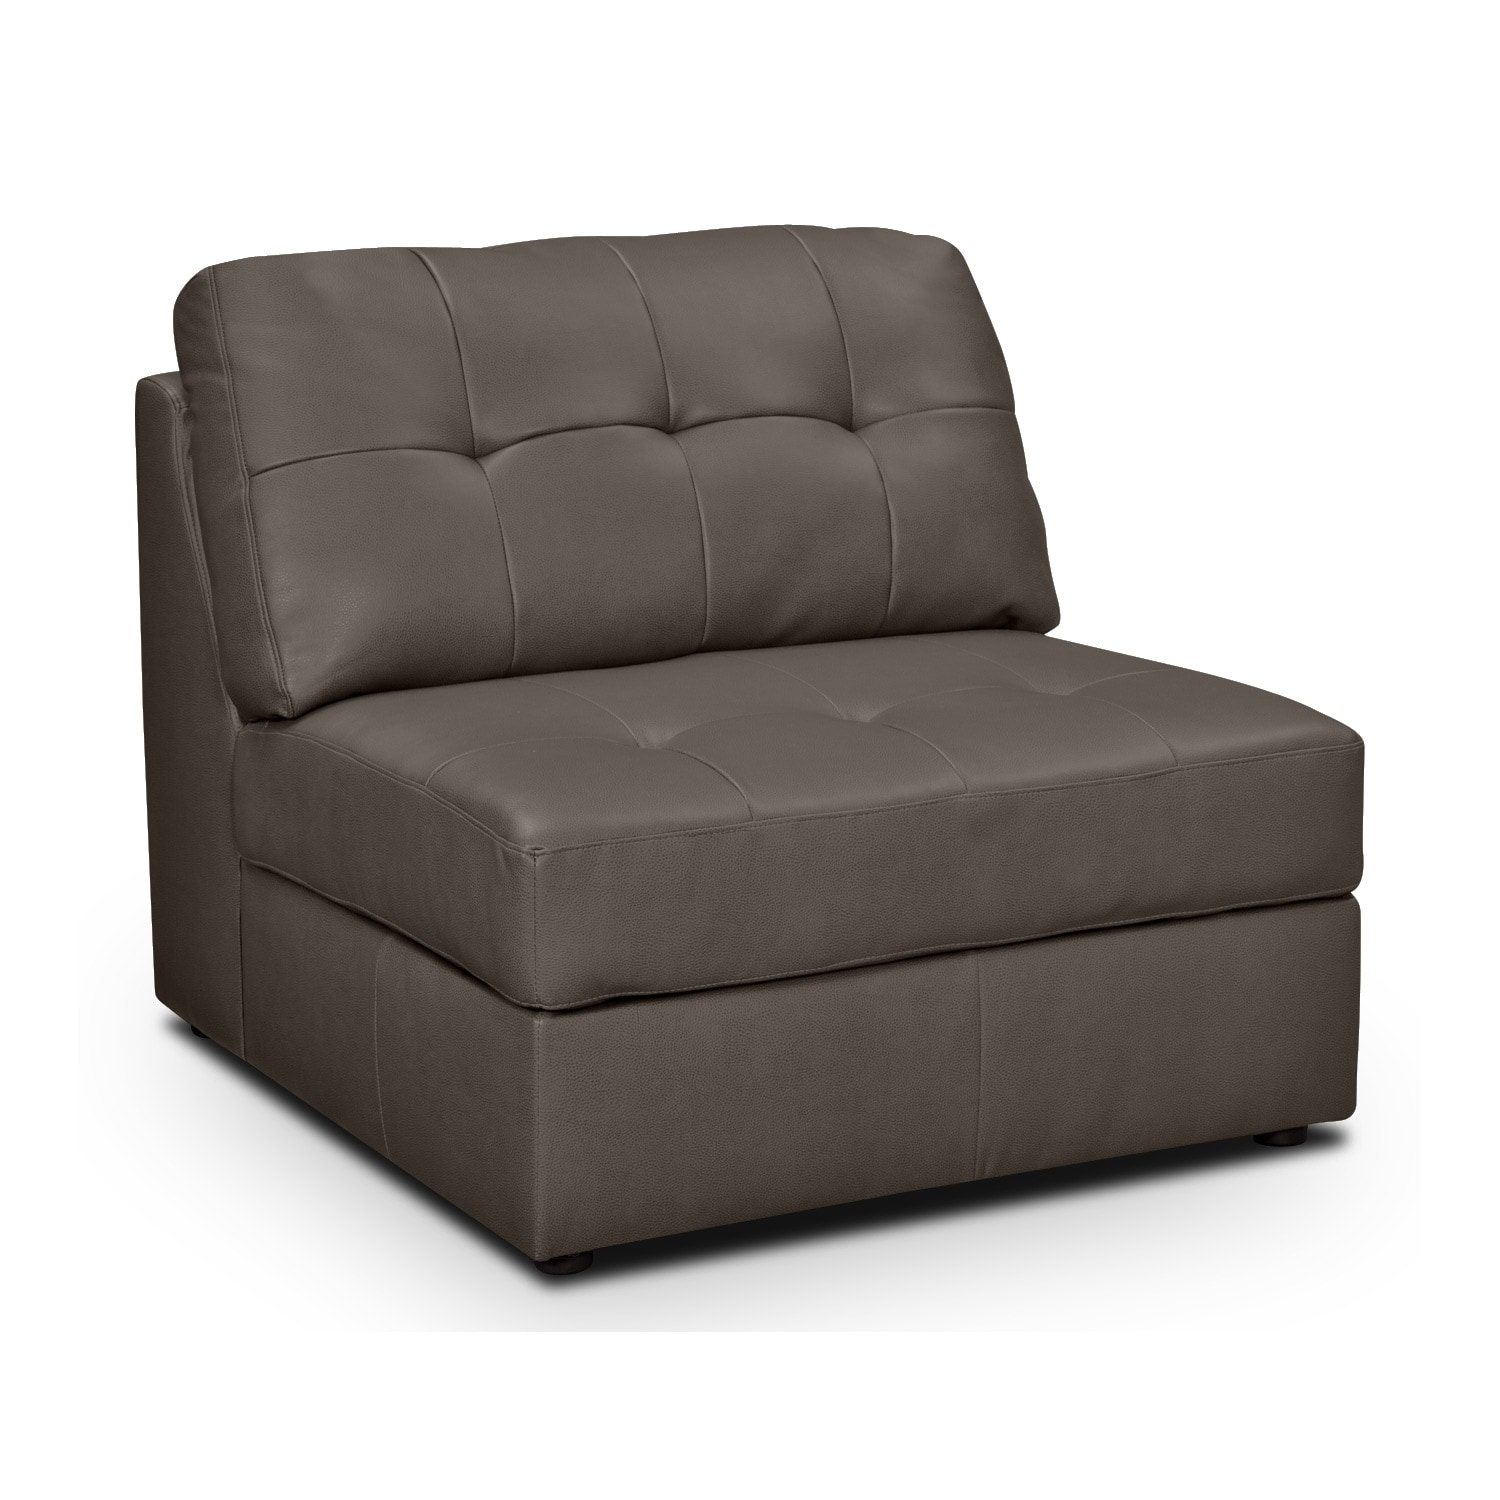 Aventura Iii Leather Armless Chair Value City Furniture